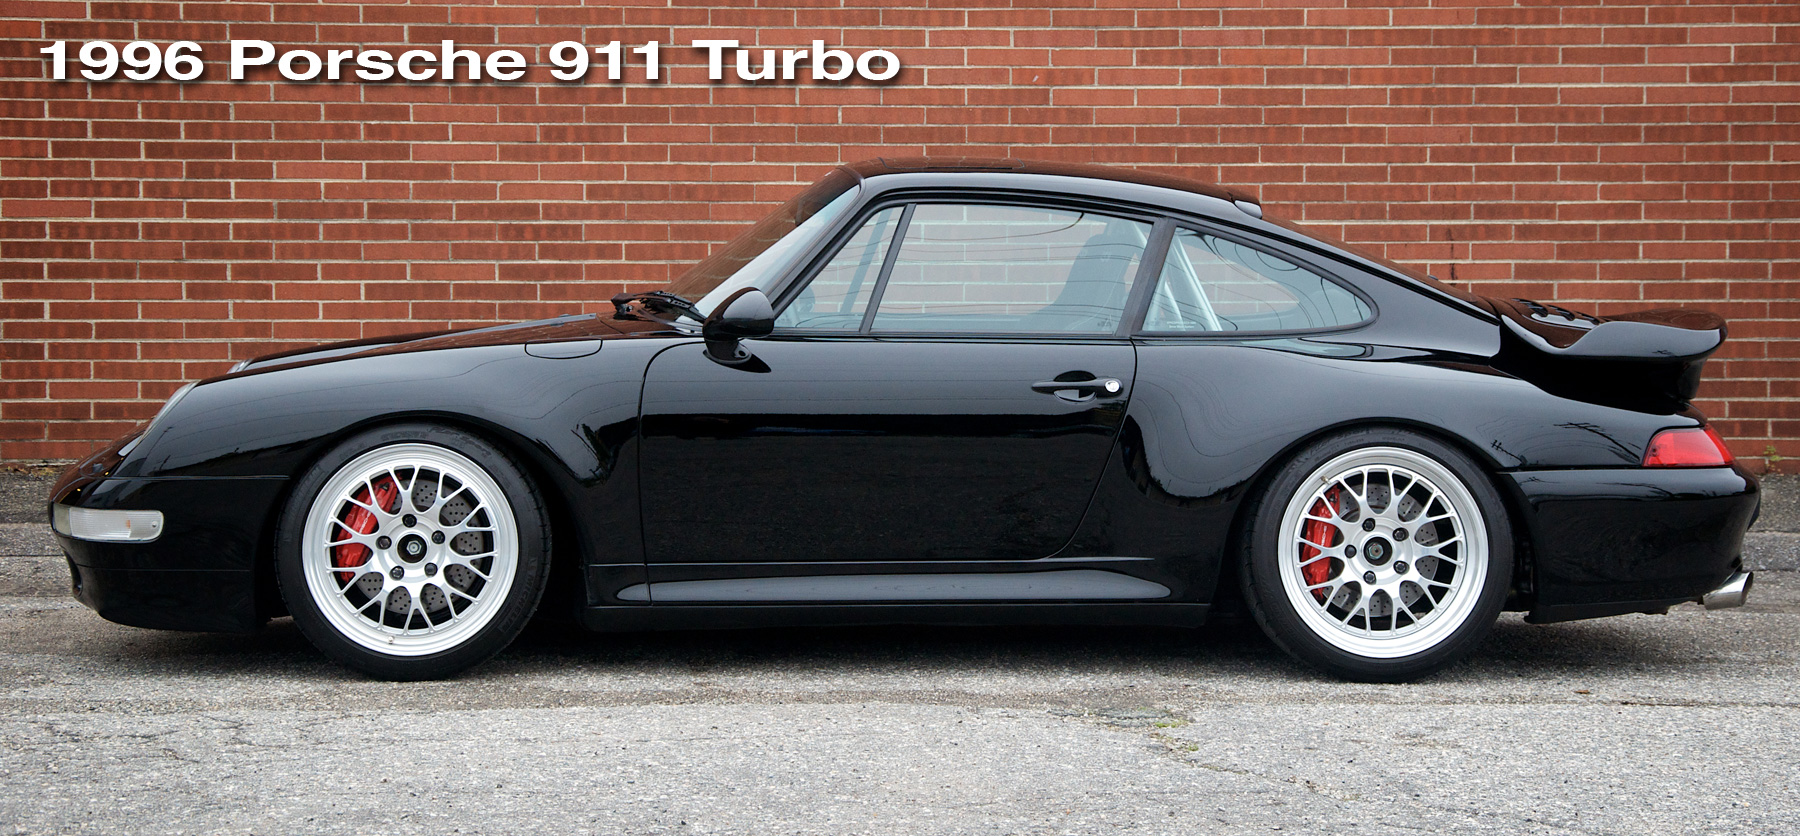 The header image for the 993 Turbo project car page showing a black 1996 911 Turbo in front of a brick wall.